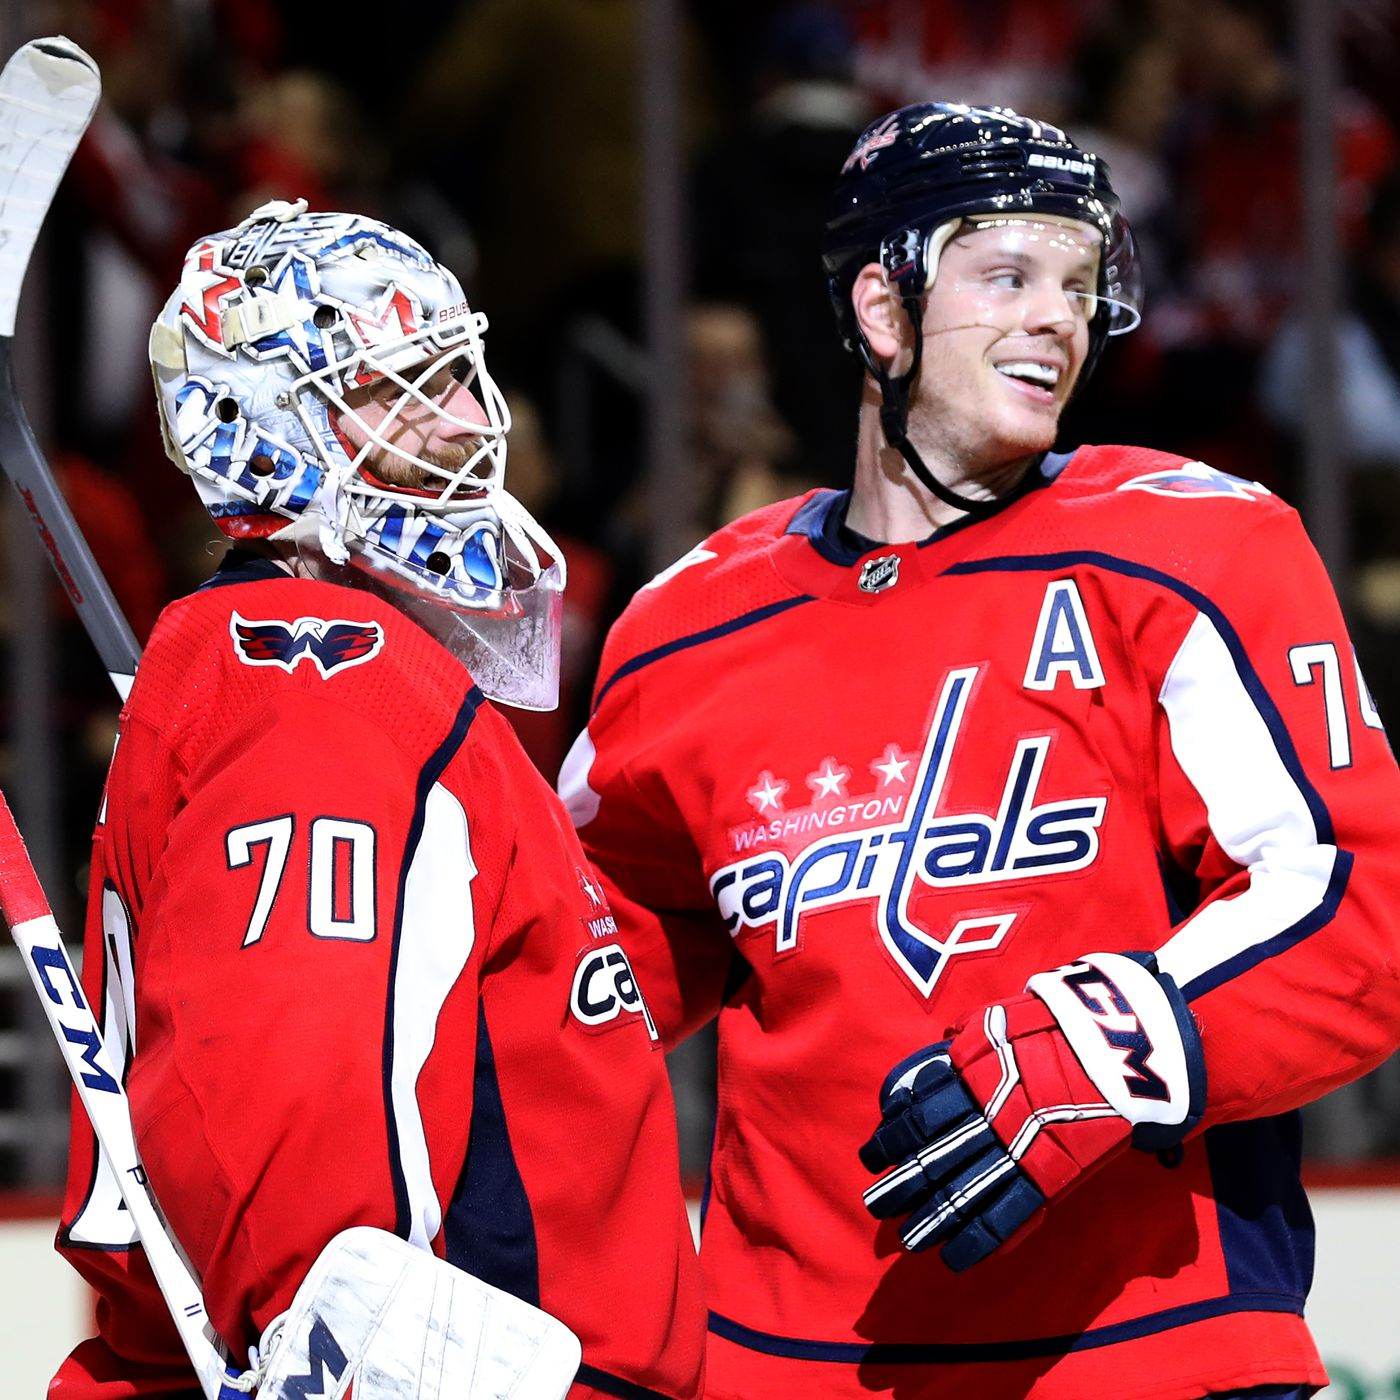 John Carlson And Braden Holtby Named To The 2019 Metro Division All Star Team Japers Rink